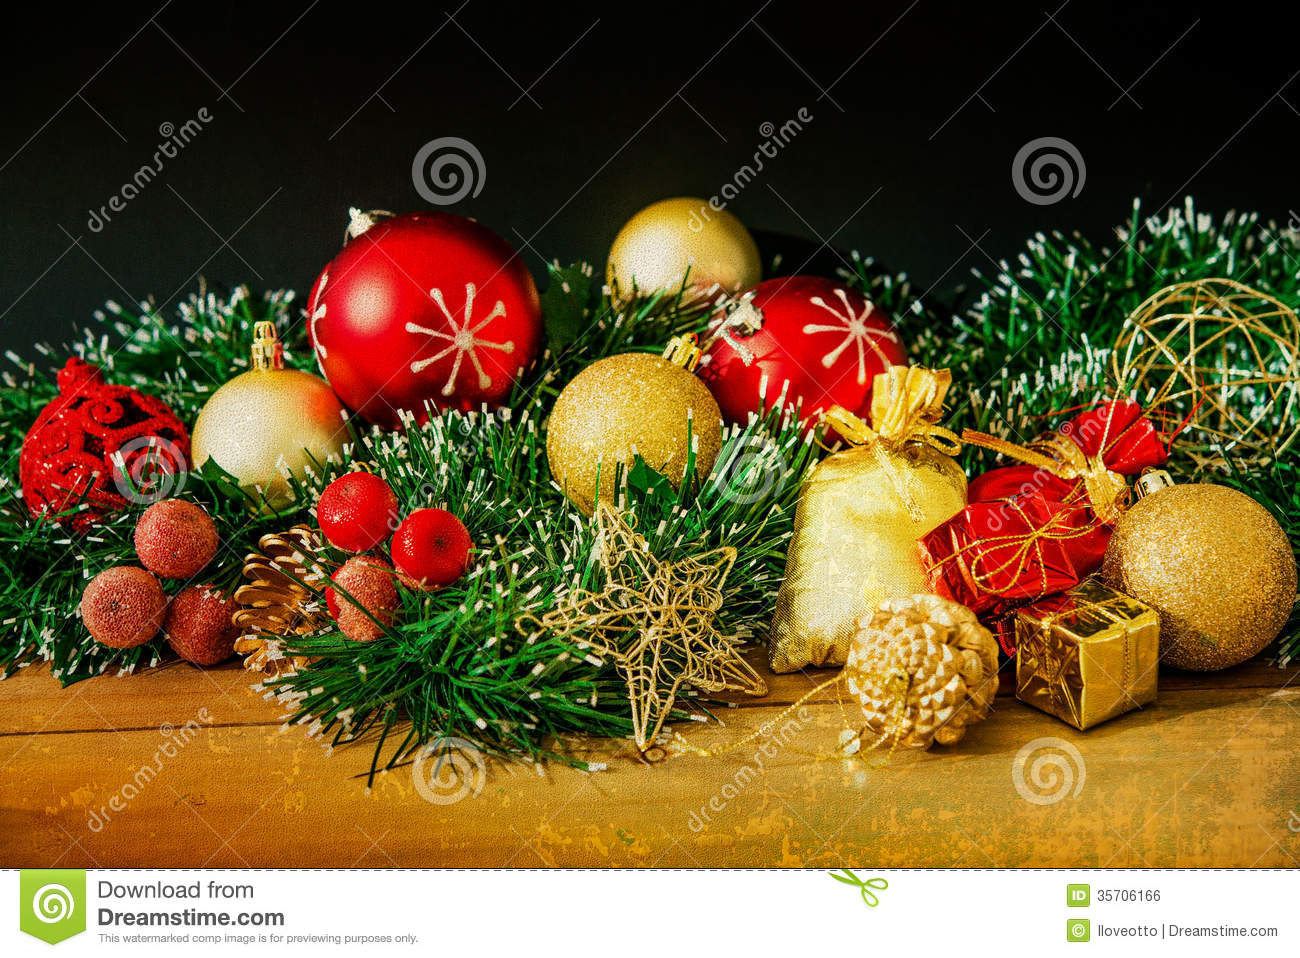 Old Fashioned Christmas Decoration Stock Photo - Image of decor ...